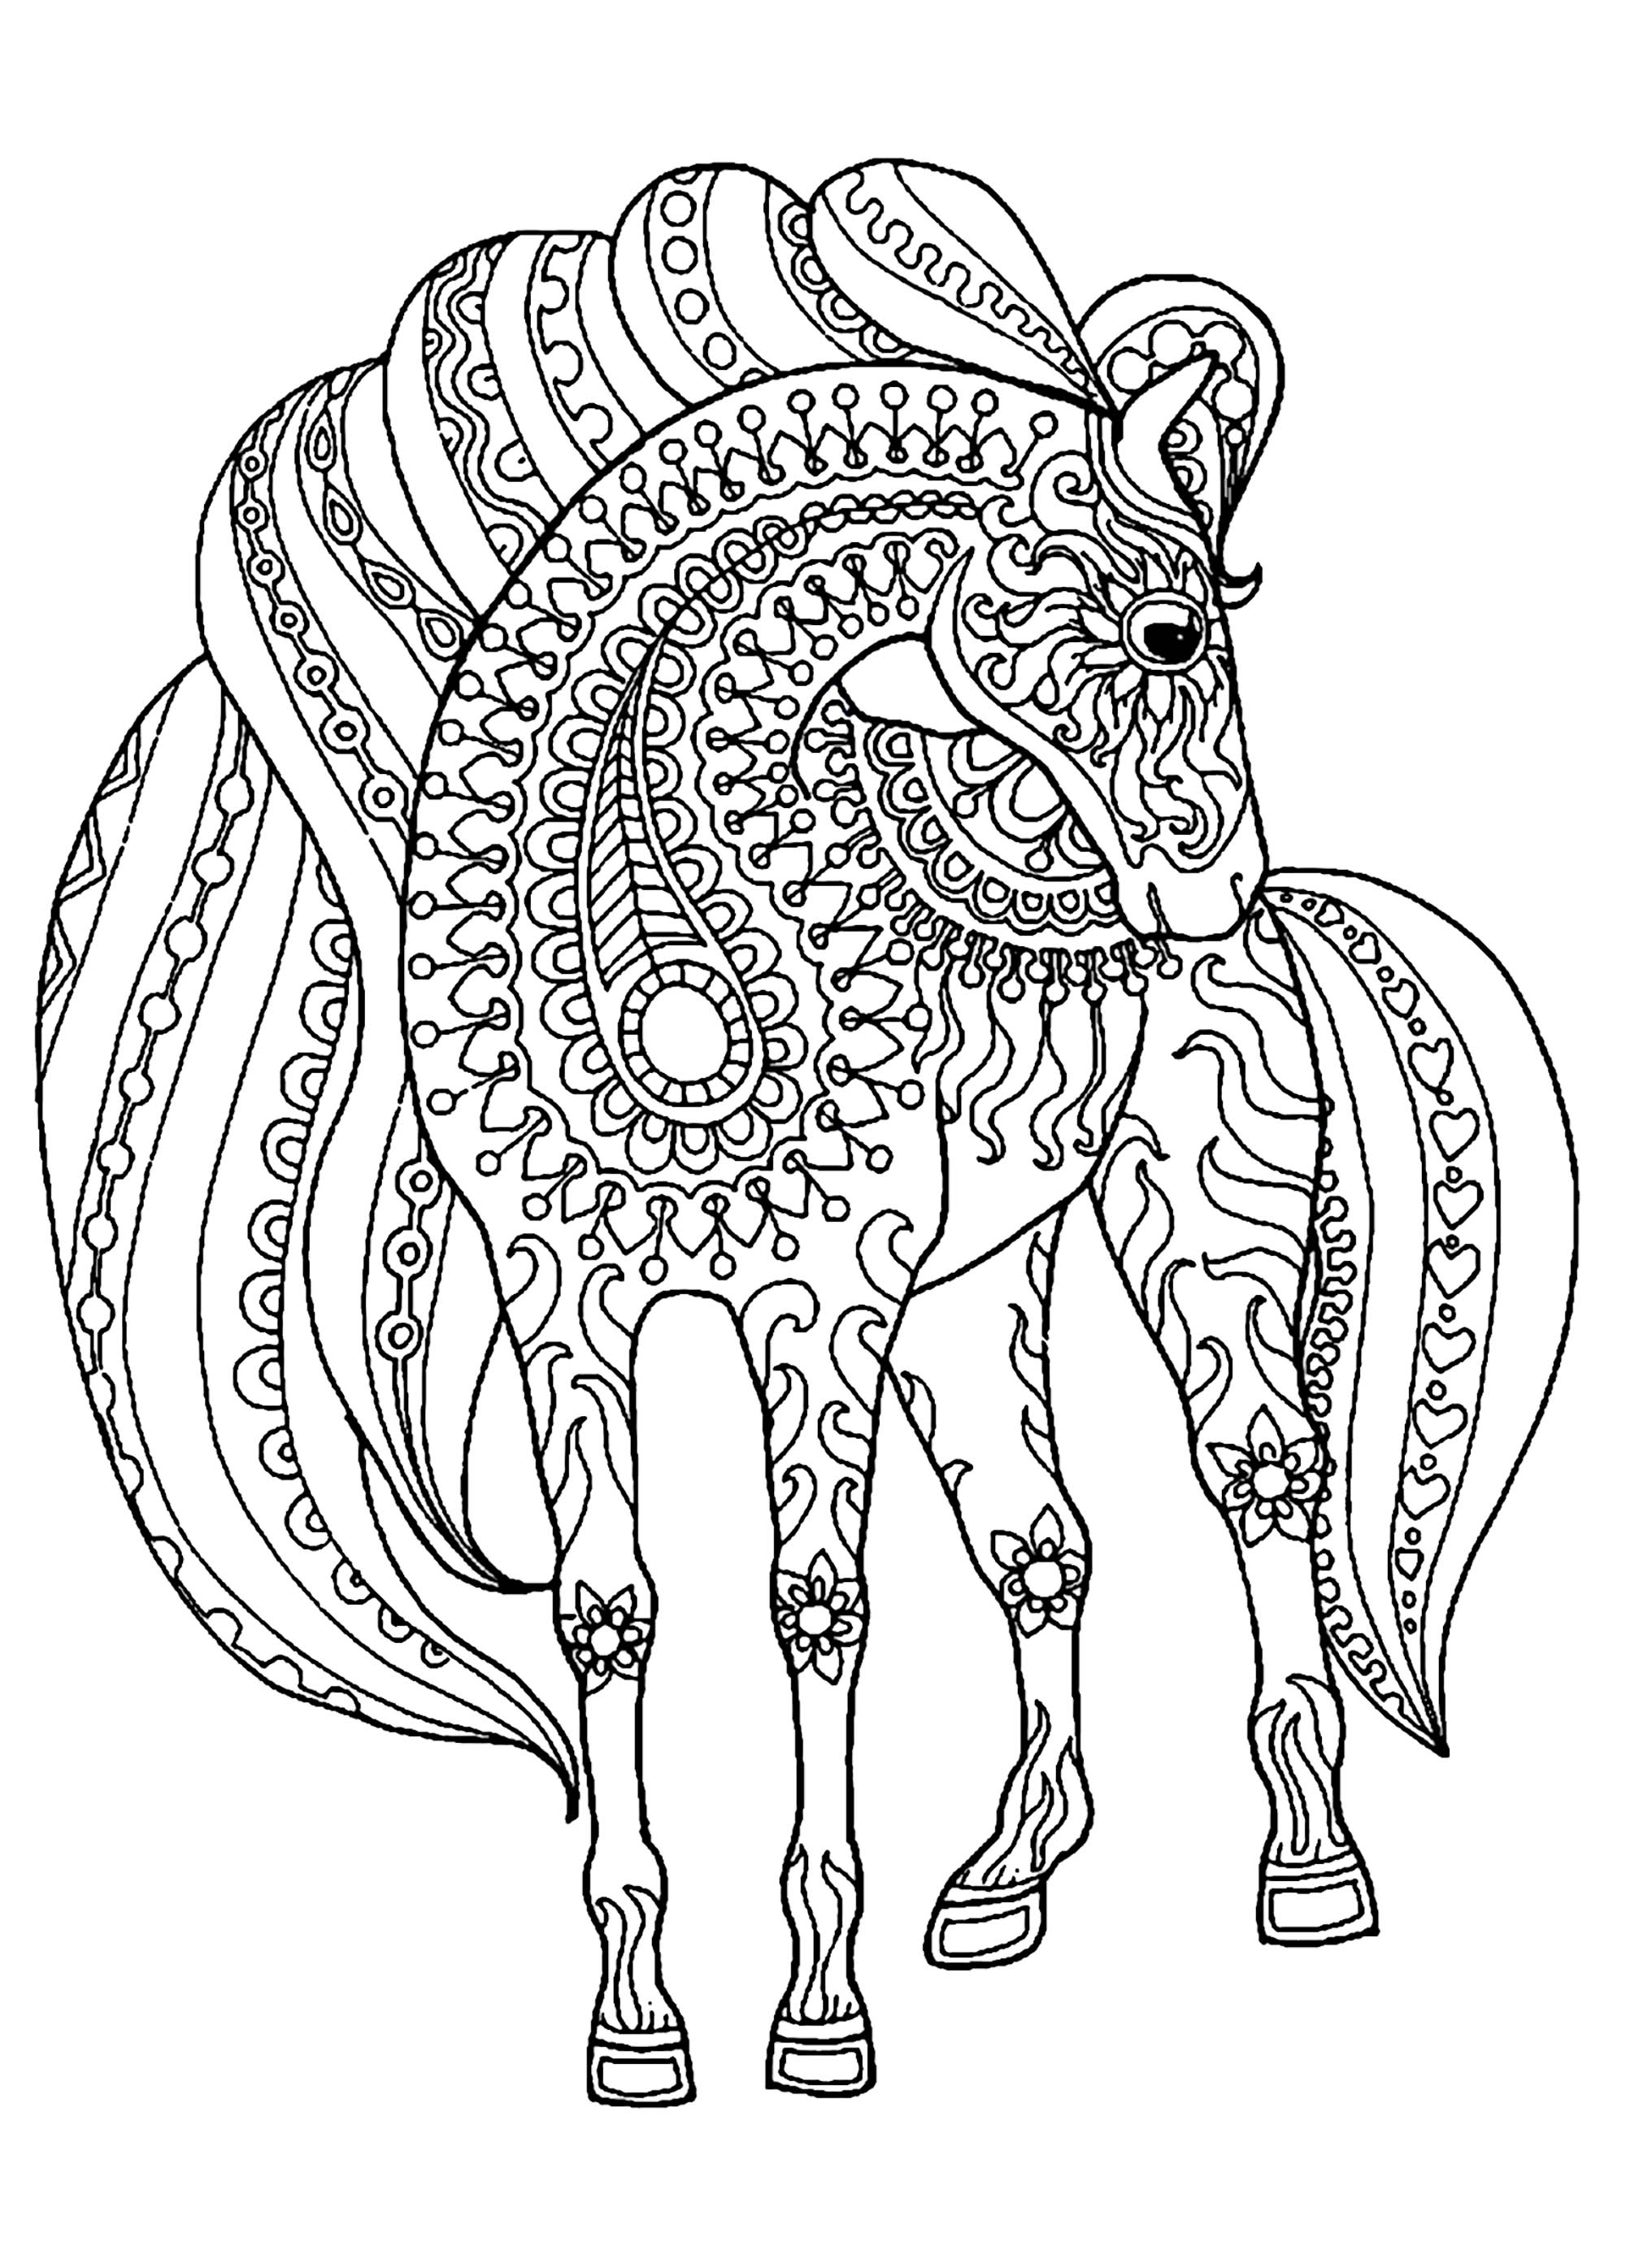 horse simple zentangle patterns horses adult coloring pages. Black Bedroom Furniture Sets. Home Design Ideas